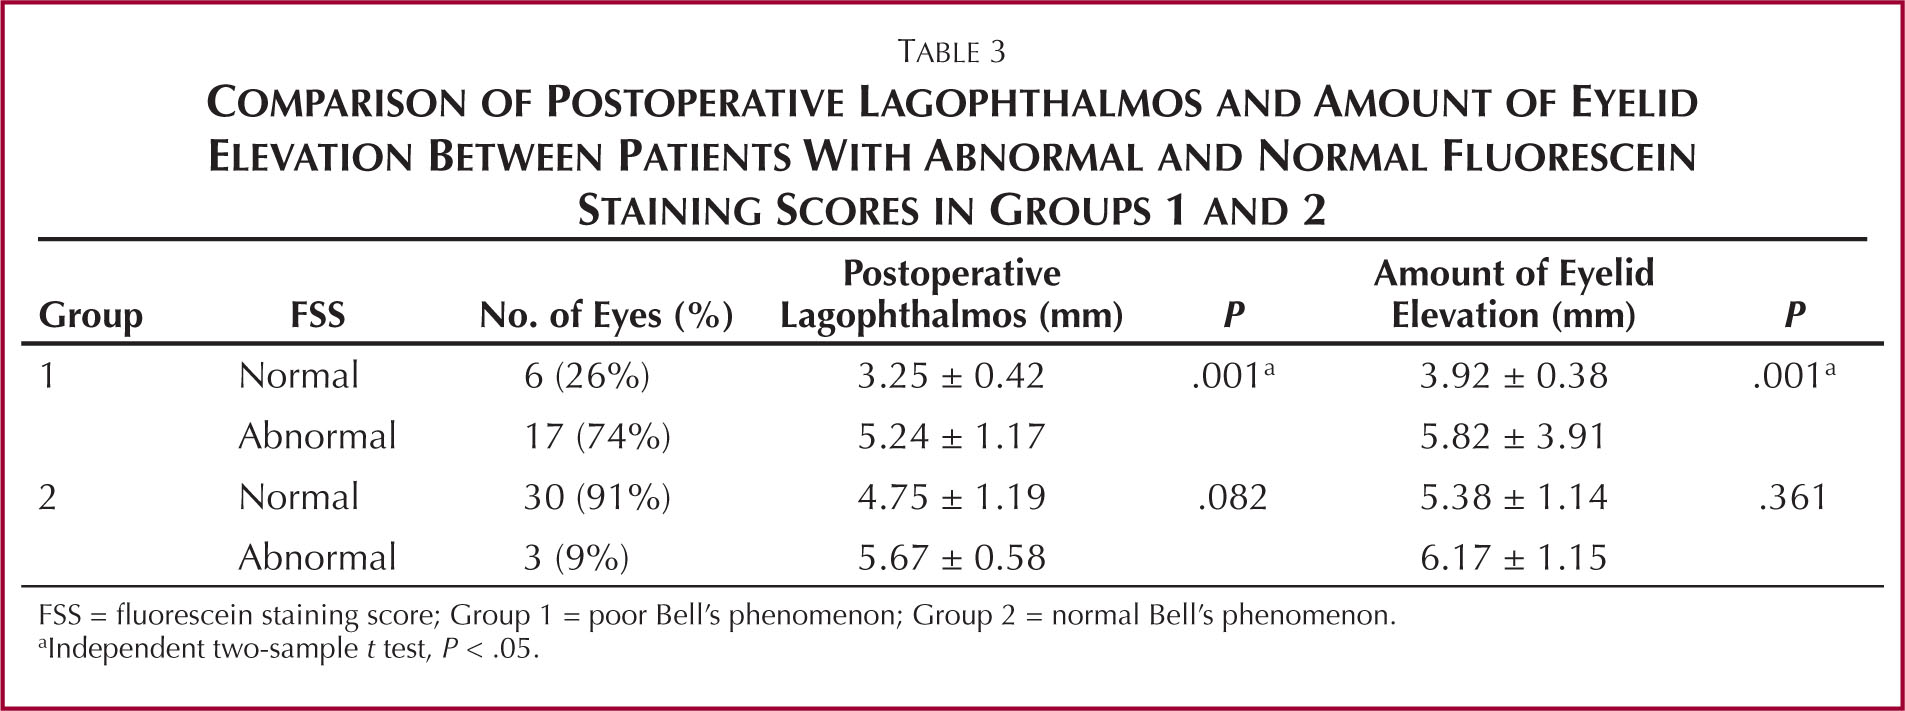 Comparison of Postoperative Lagophthalmos and Amount of Eyelid Elevation Between Patients with Abnormal and Normal Fluorescein Staining Scores in Groups 1 and 2